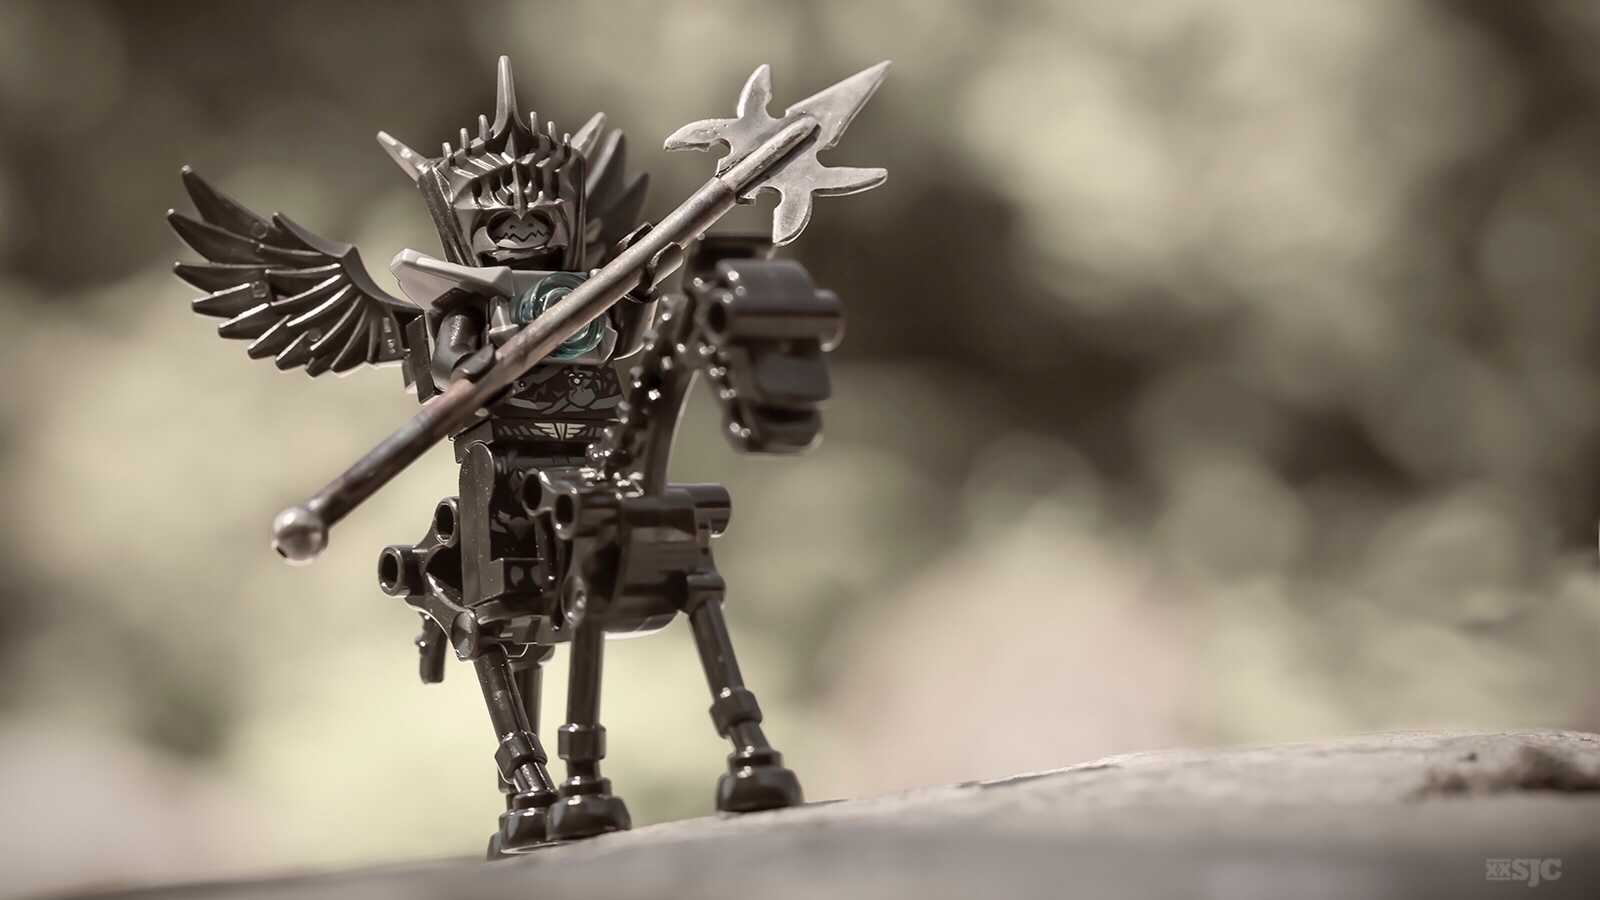 a LEGO black winged angle riding a black skeleton horse wields a large and deadly battle axe